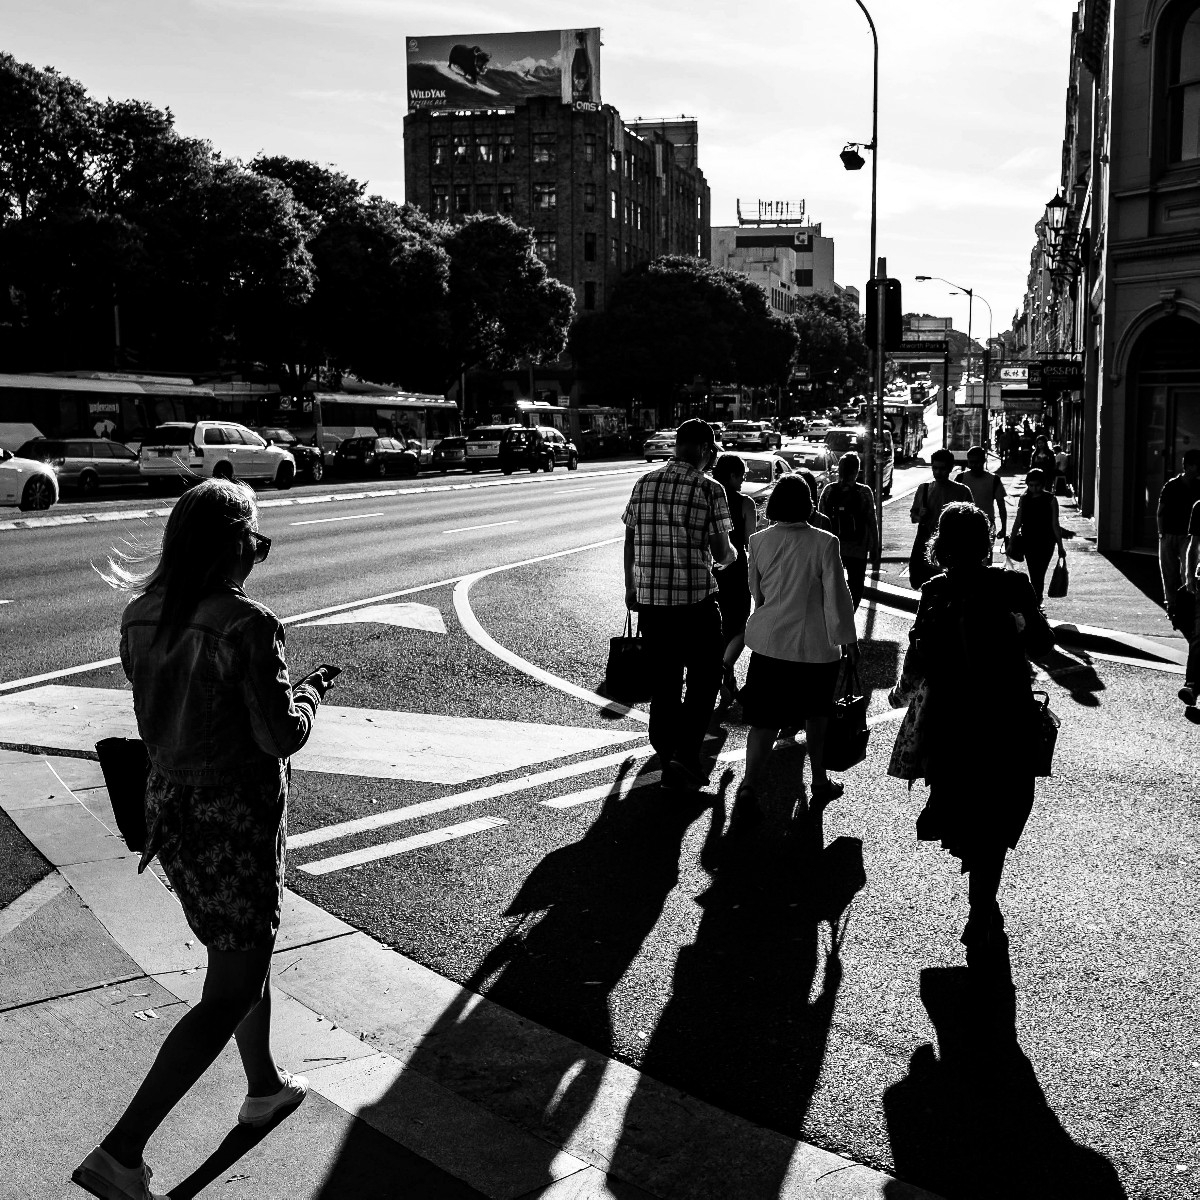 Journey Home - streetphotography - shootthrillz | ello